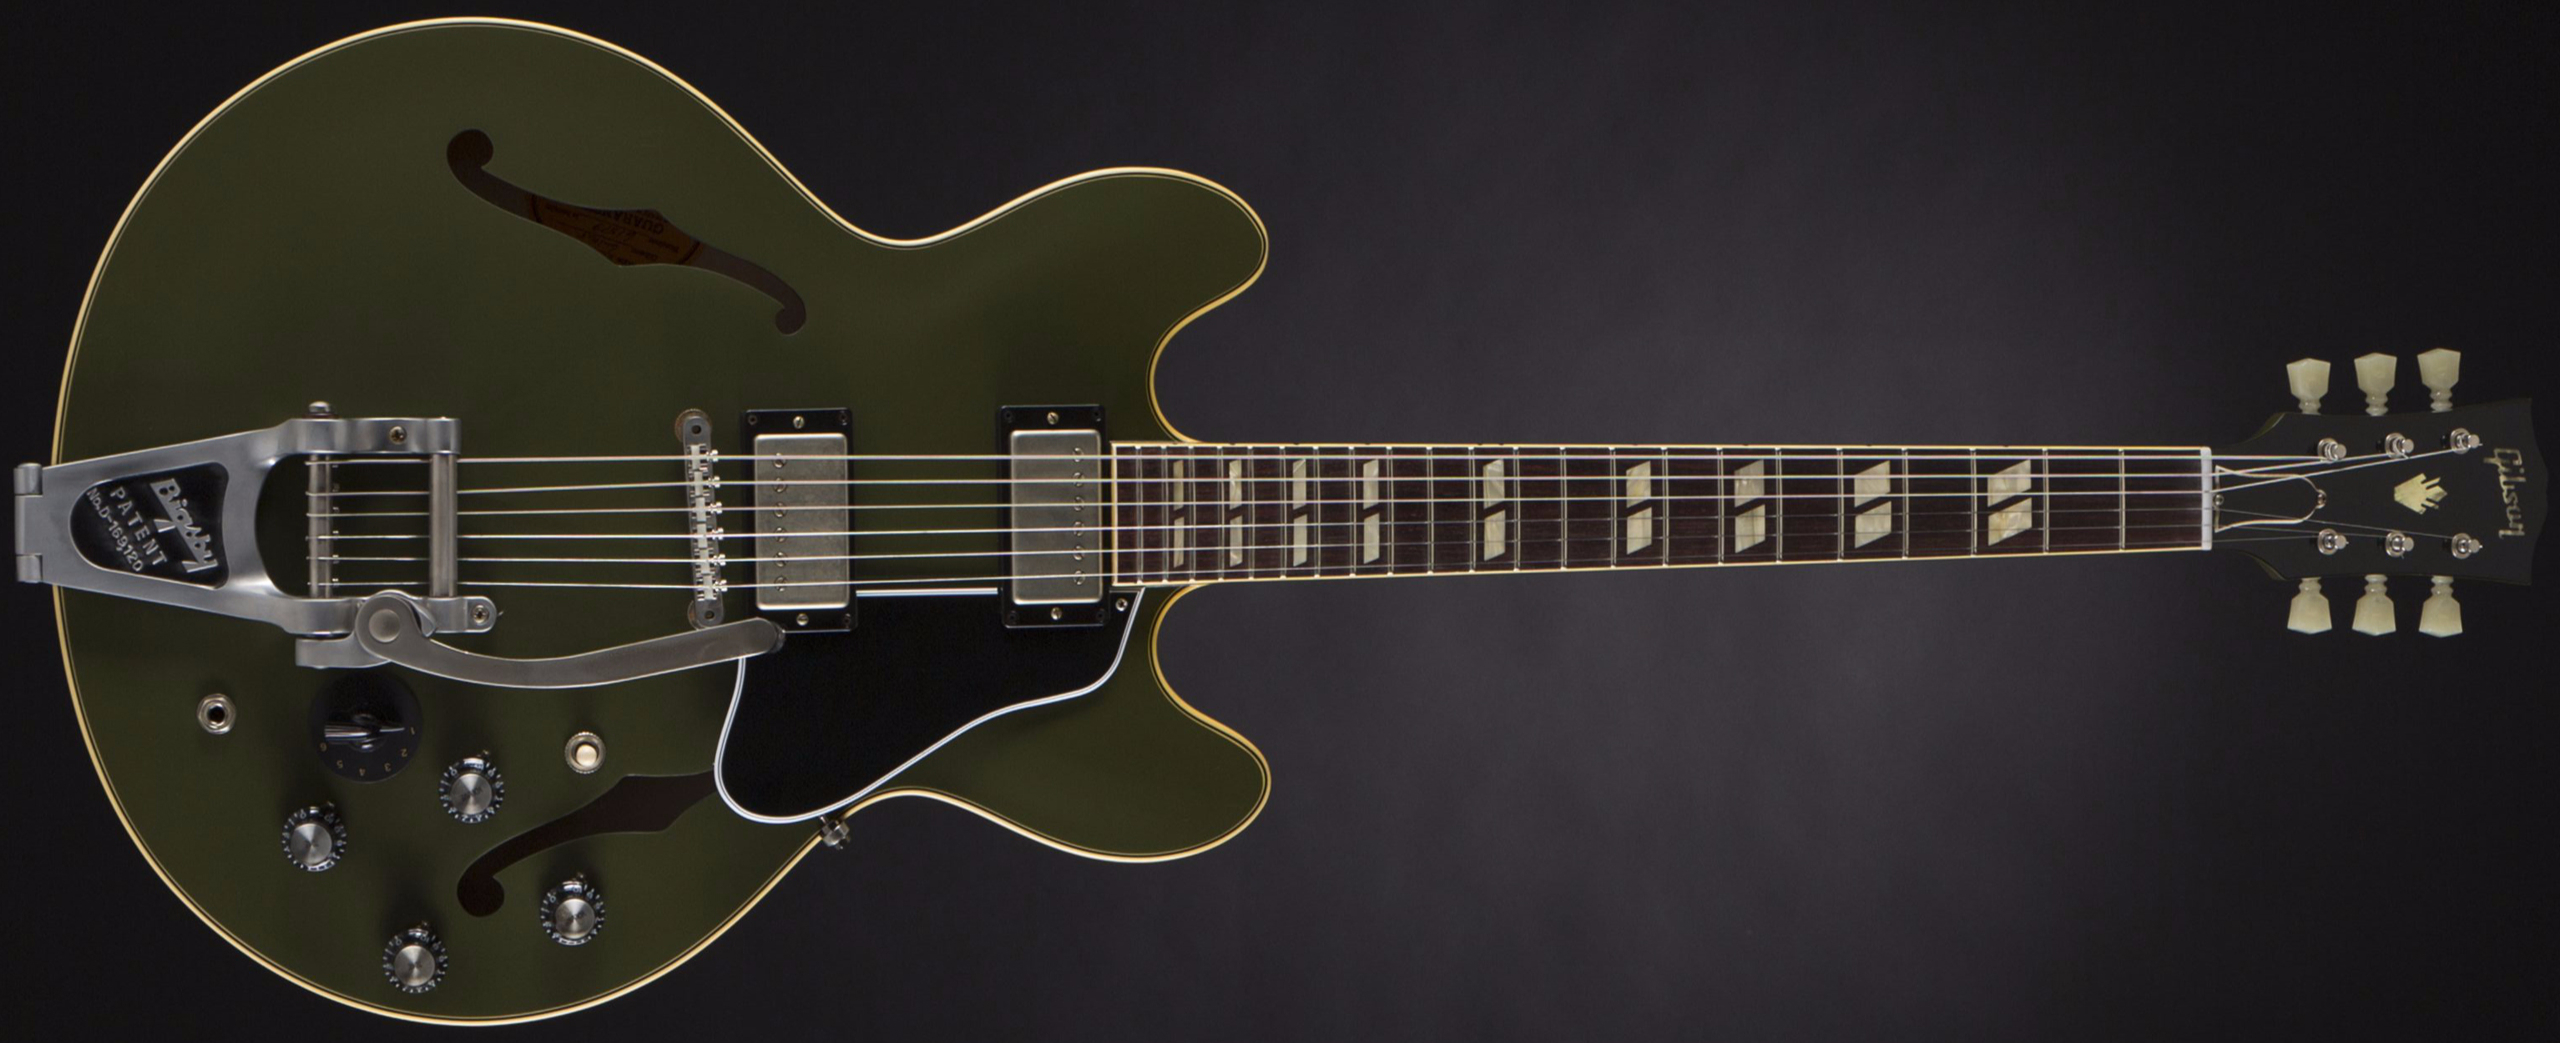 GIBSON ES-345 Bigsby Olive Drab Green #61579